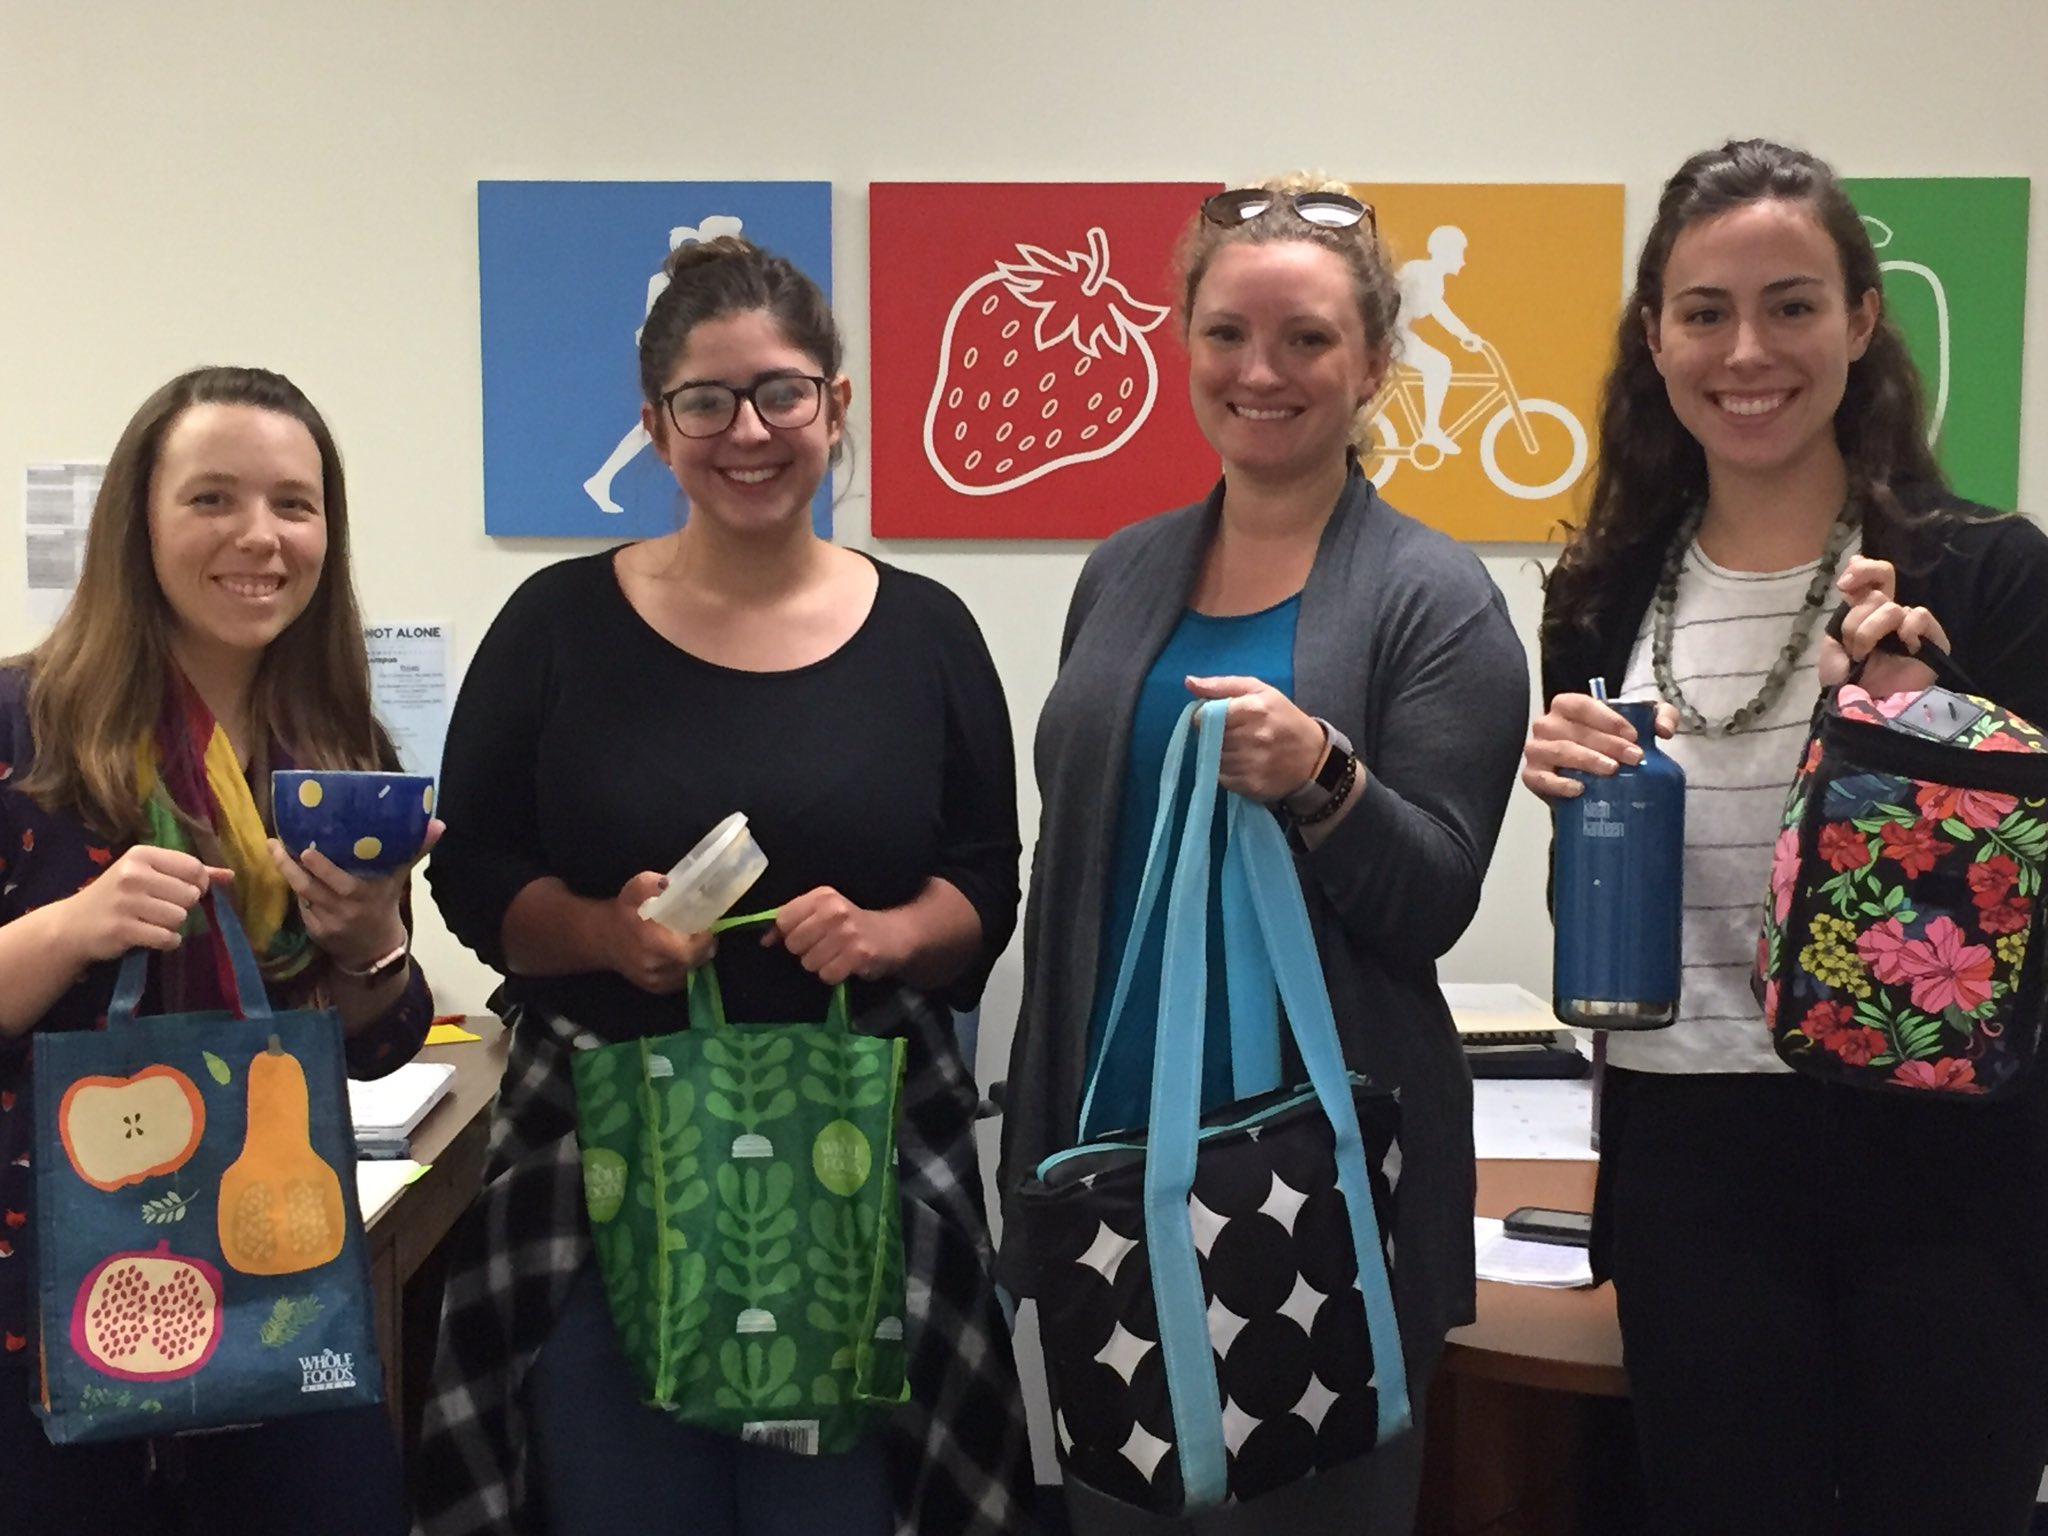 Our staff & students bring lunch in reusable bags/containers! @TulaneMCH how do you reduce waste? Post a pic & tag a friend! #tulanerecycles https://t.co/zVYgoVMUS1